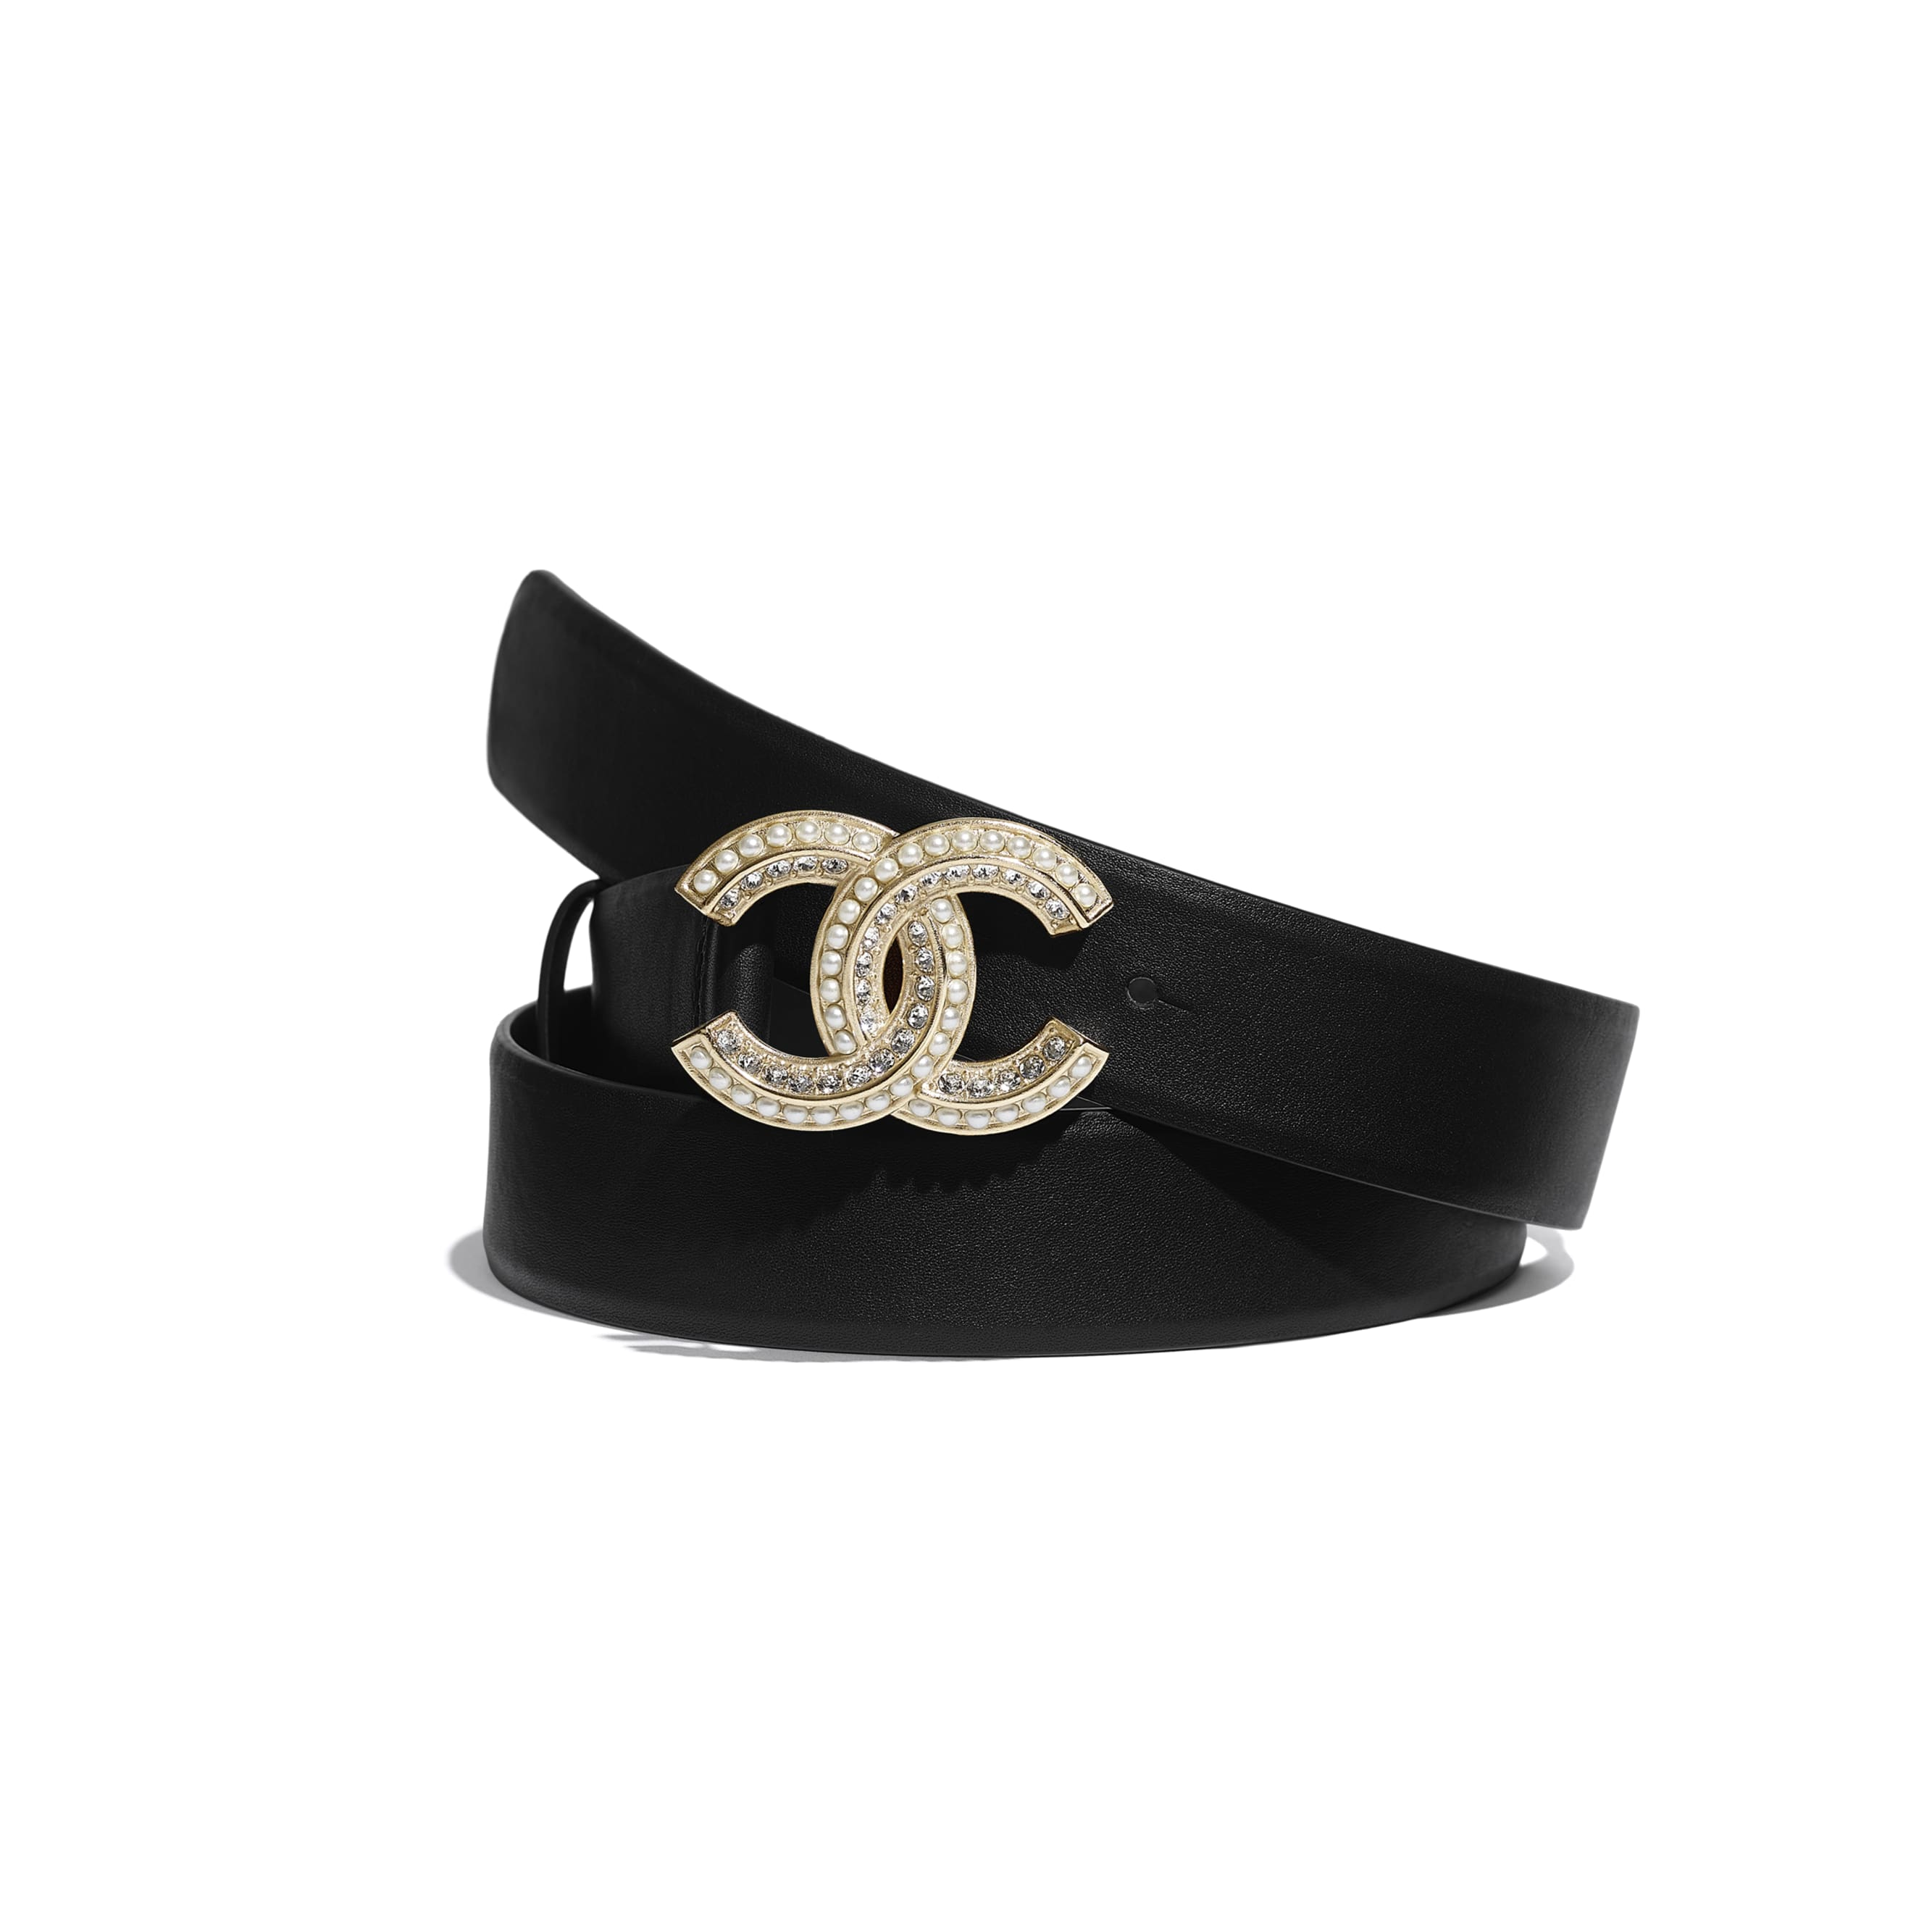 Belt - Black - Calfskin, Glass Pearls, Diamante & Gold-Tone Metal - CHANEL - Default view - see standard sized version